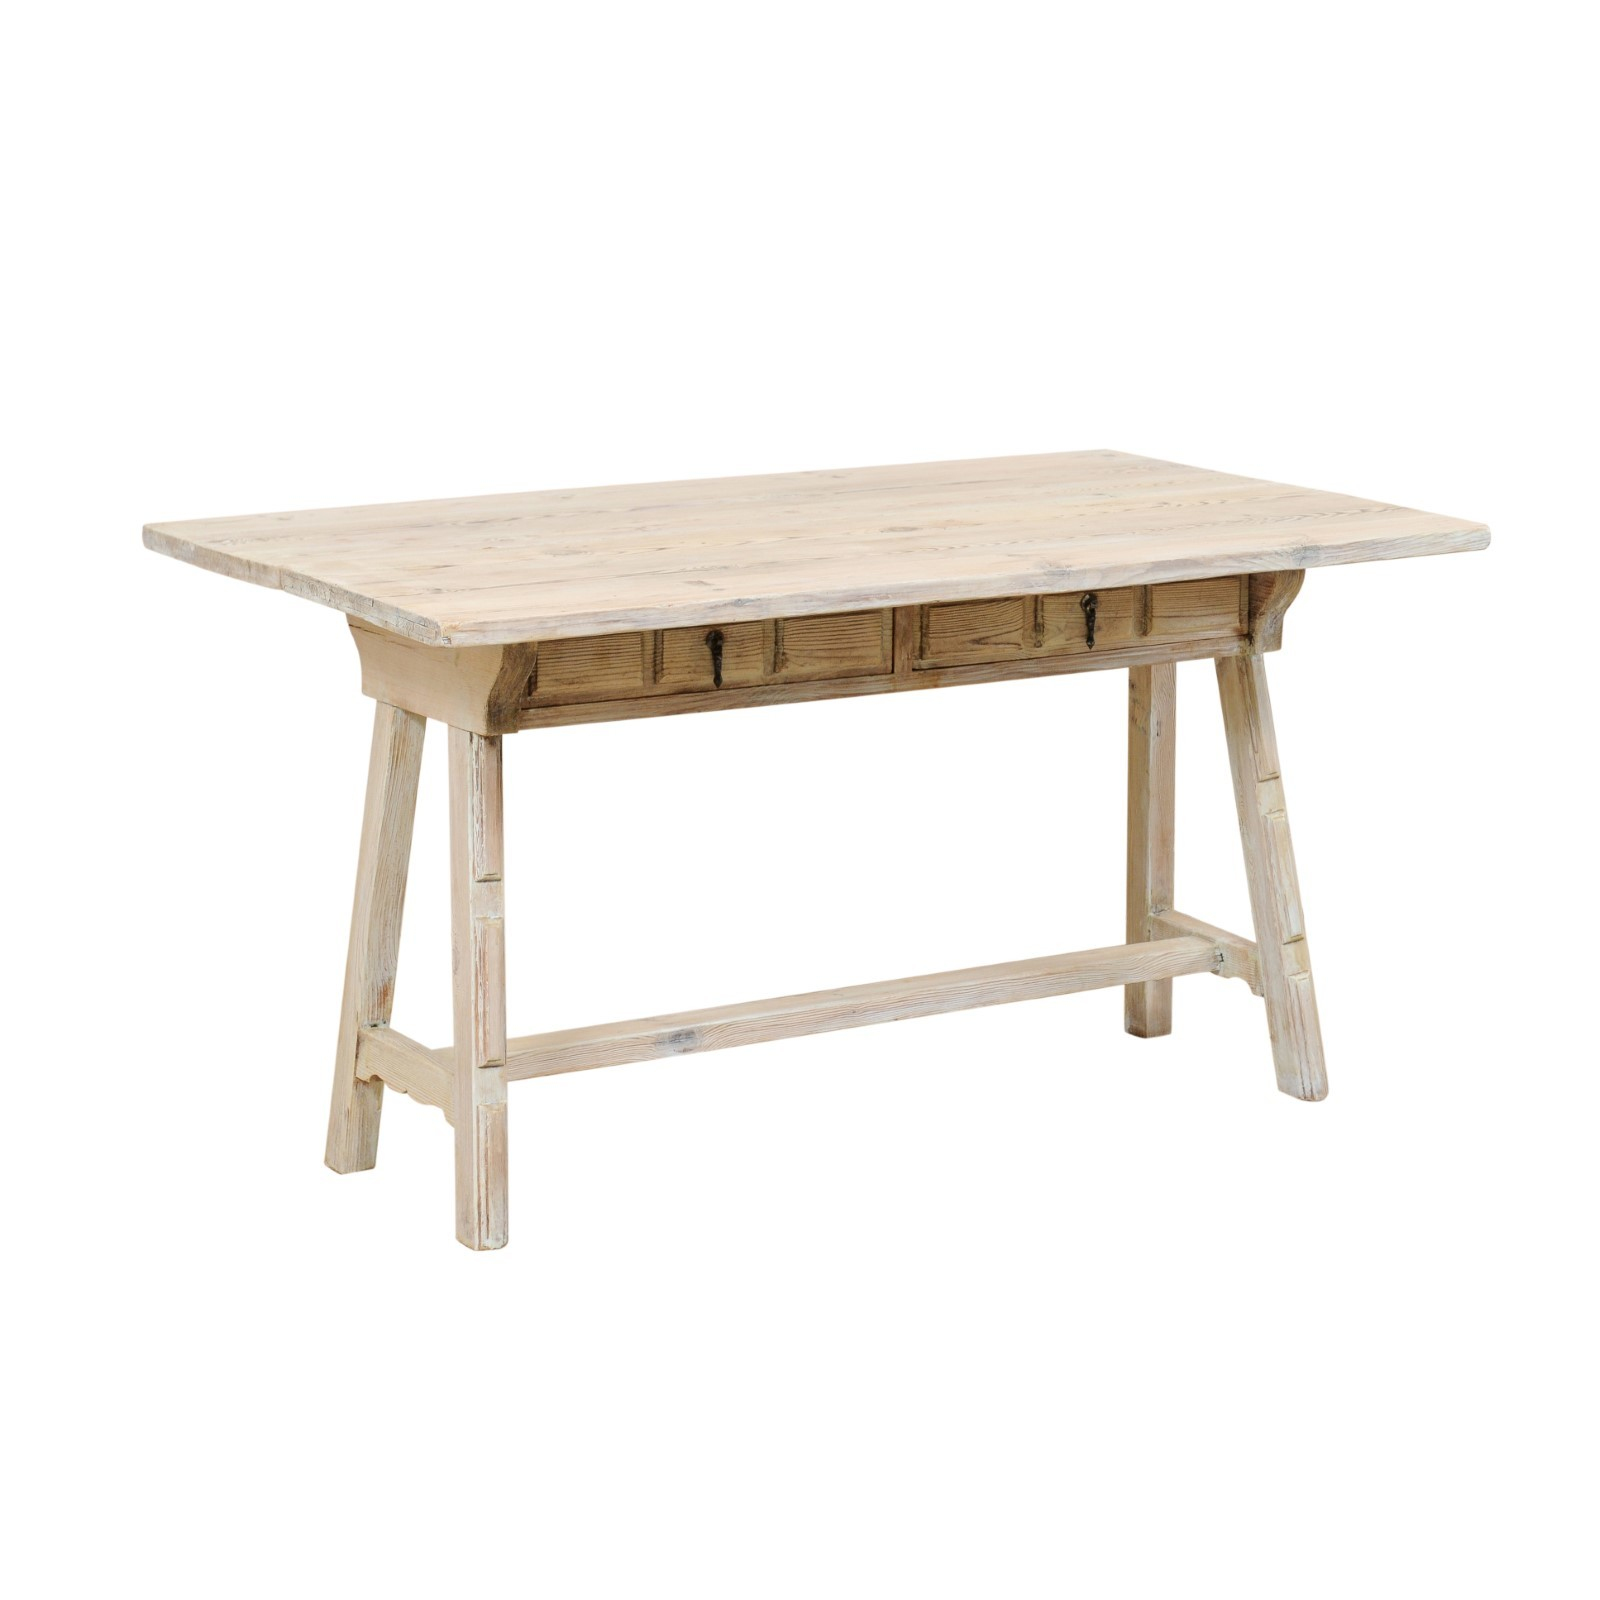 Transitional Top Table w/Sawhorse Legs